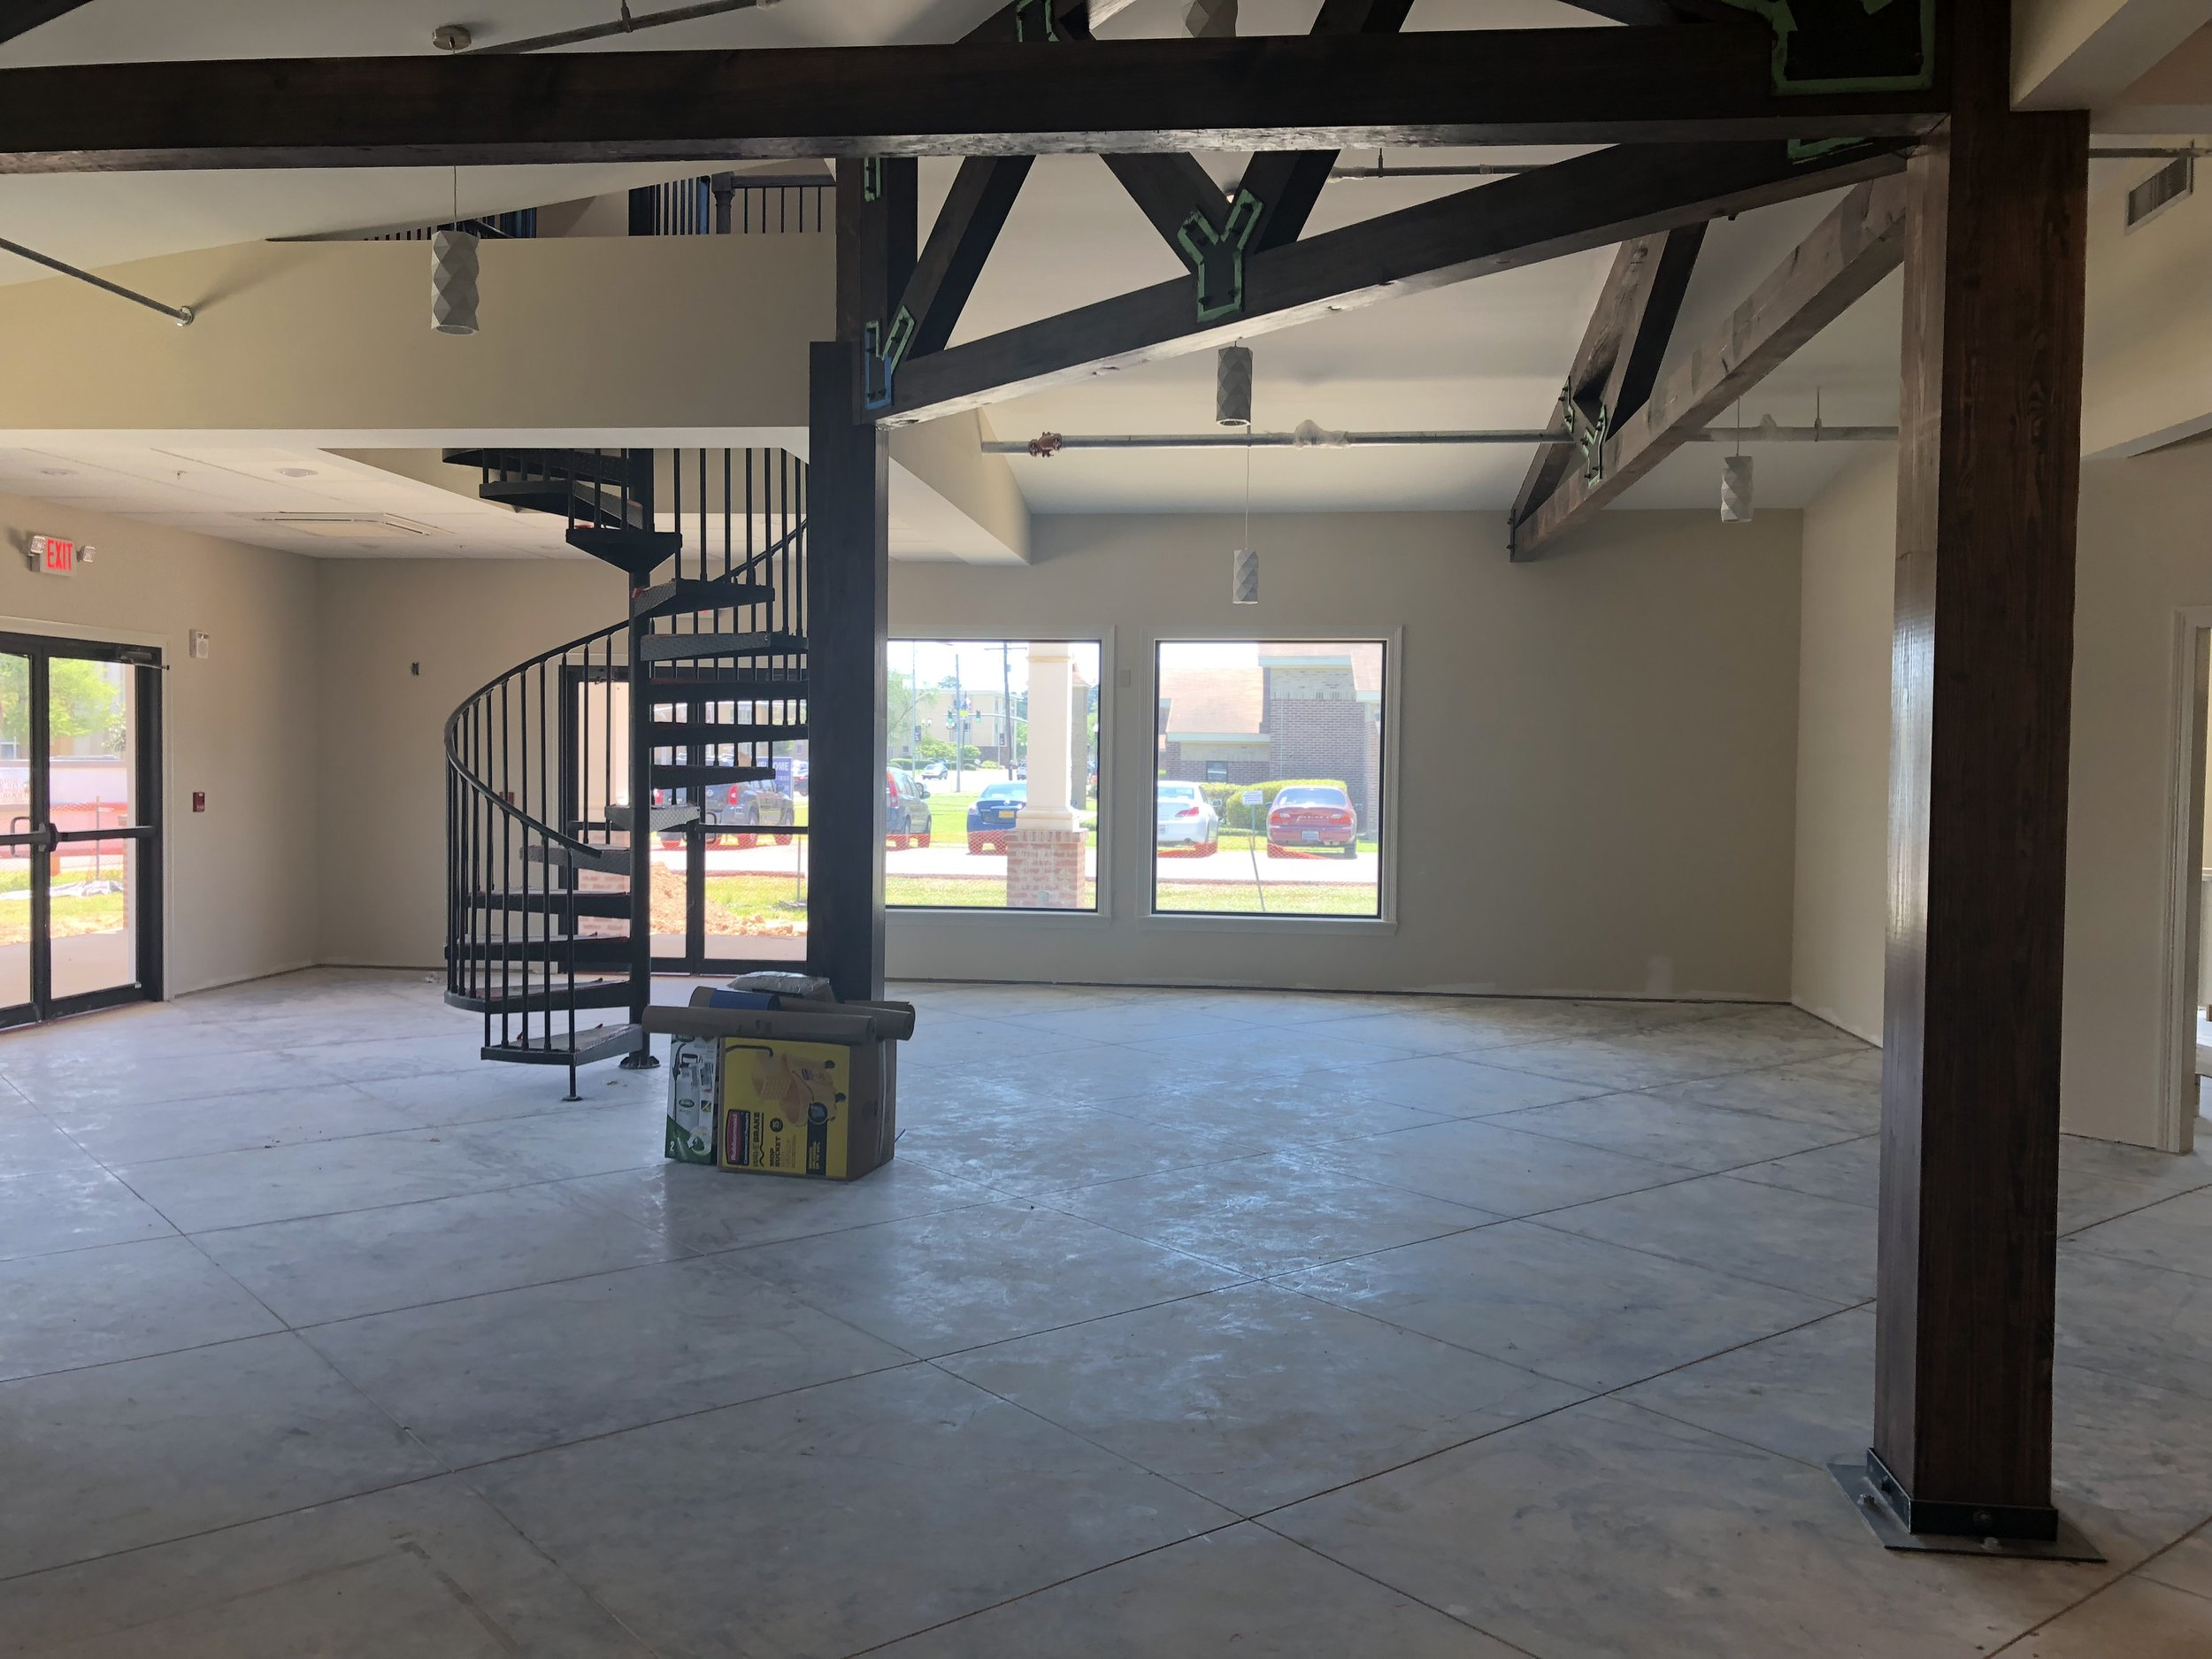 Lobby and Spiral Stairs to Office May 2018